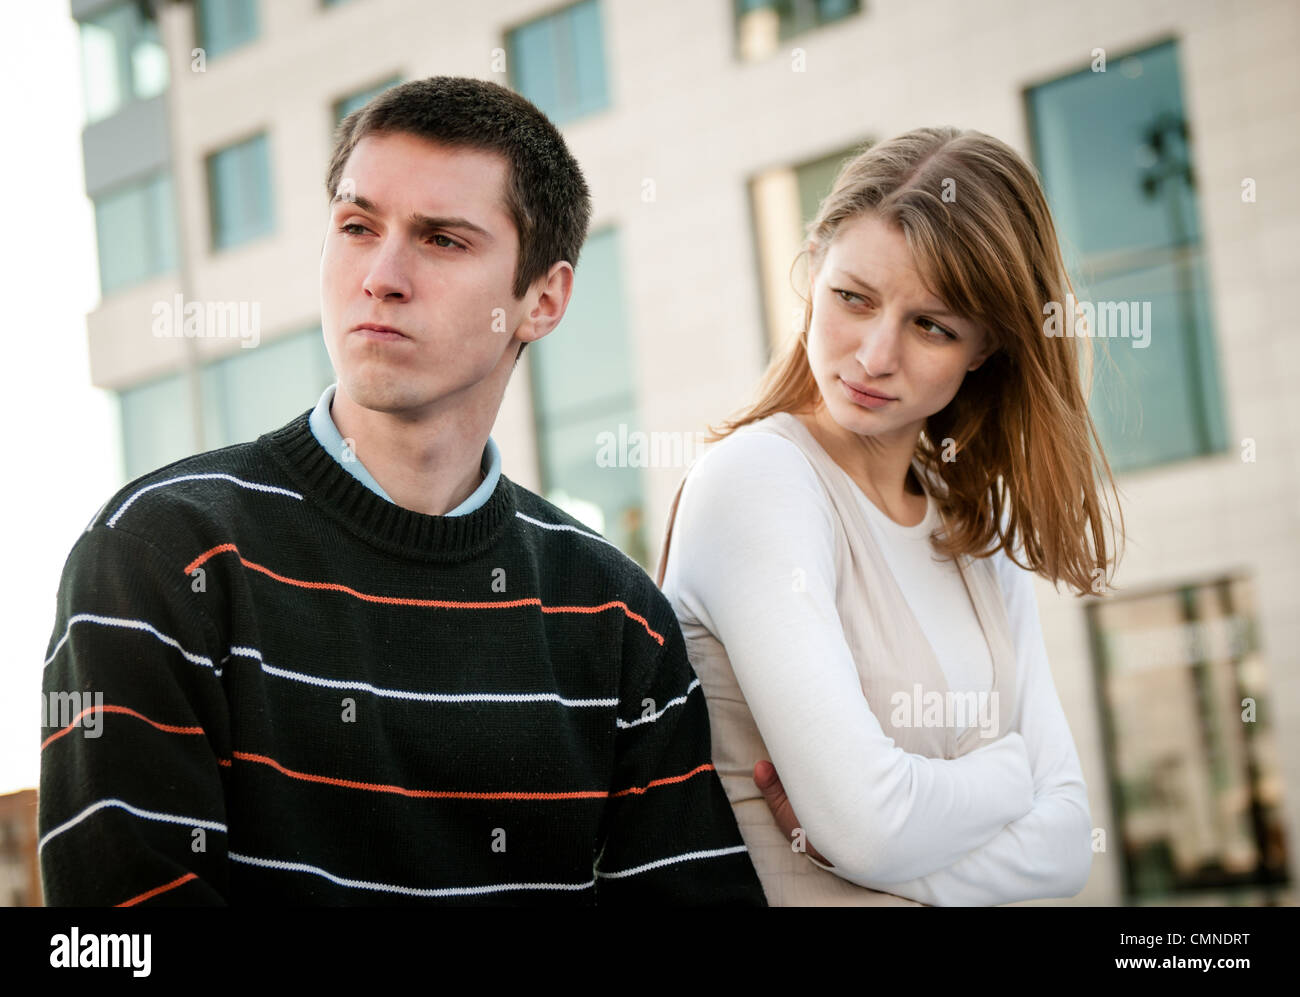 Portrait of young woman and man outdoor on street having relationship problems - Stock Image